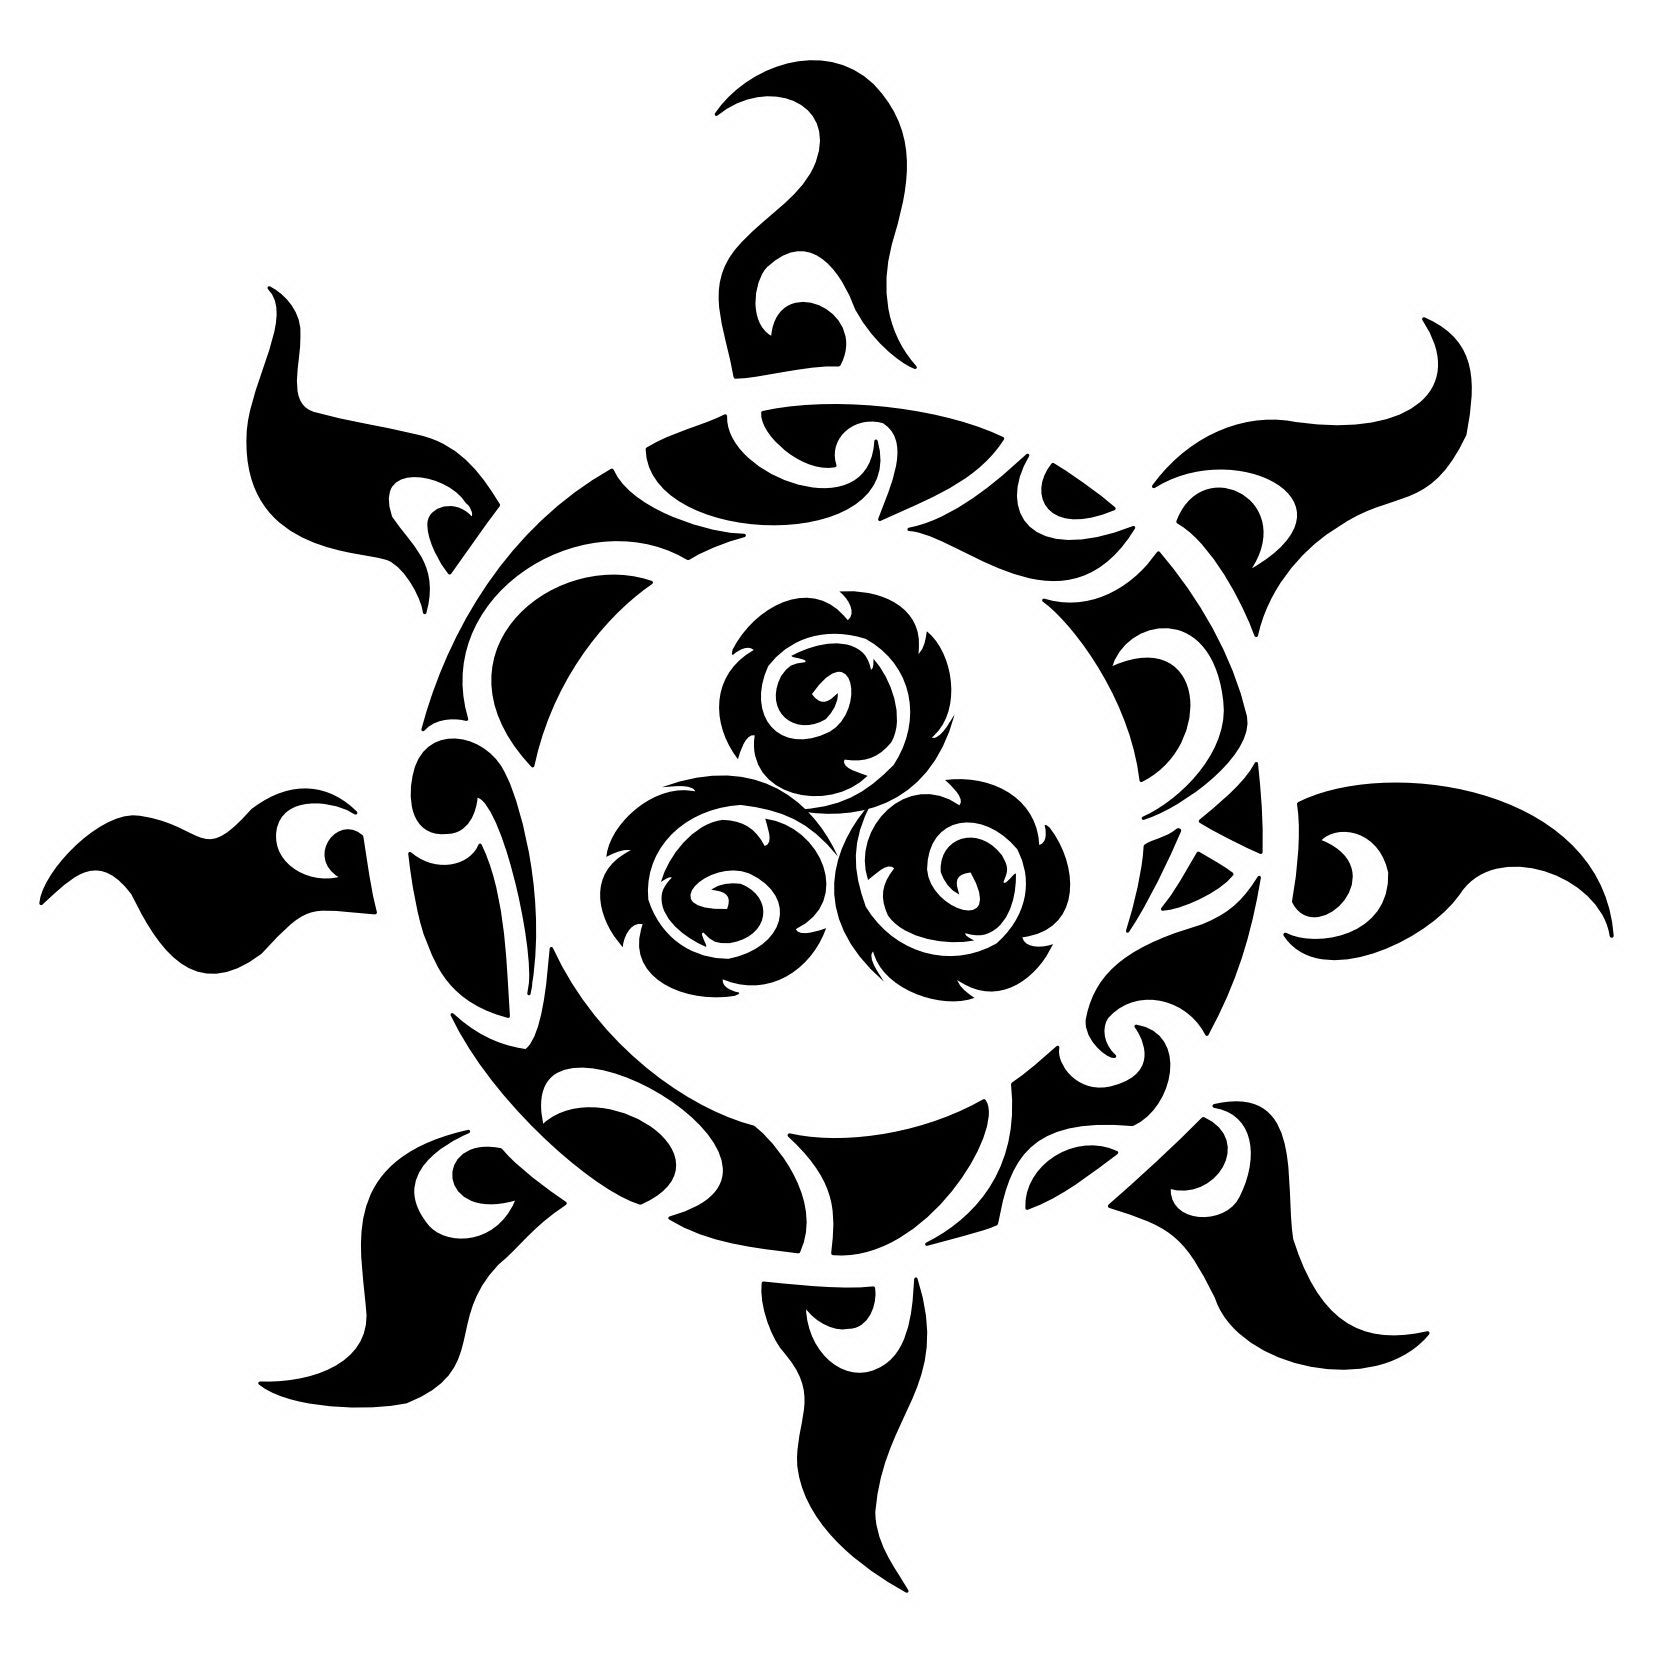 Symbols And Meanings Polynesian Tattoo Meanings